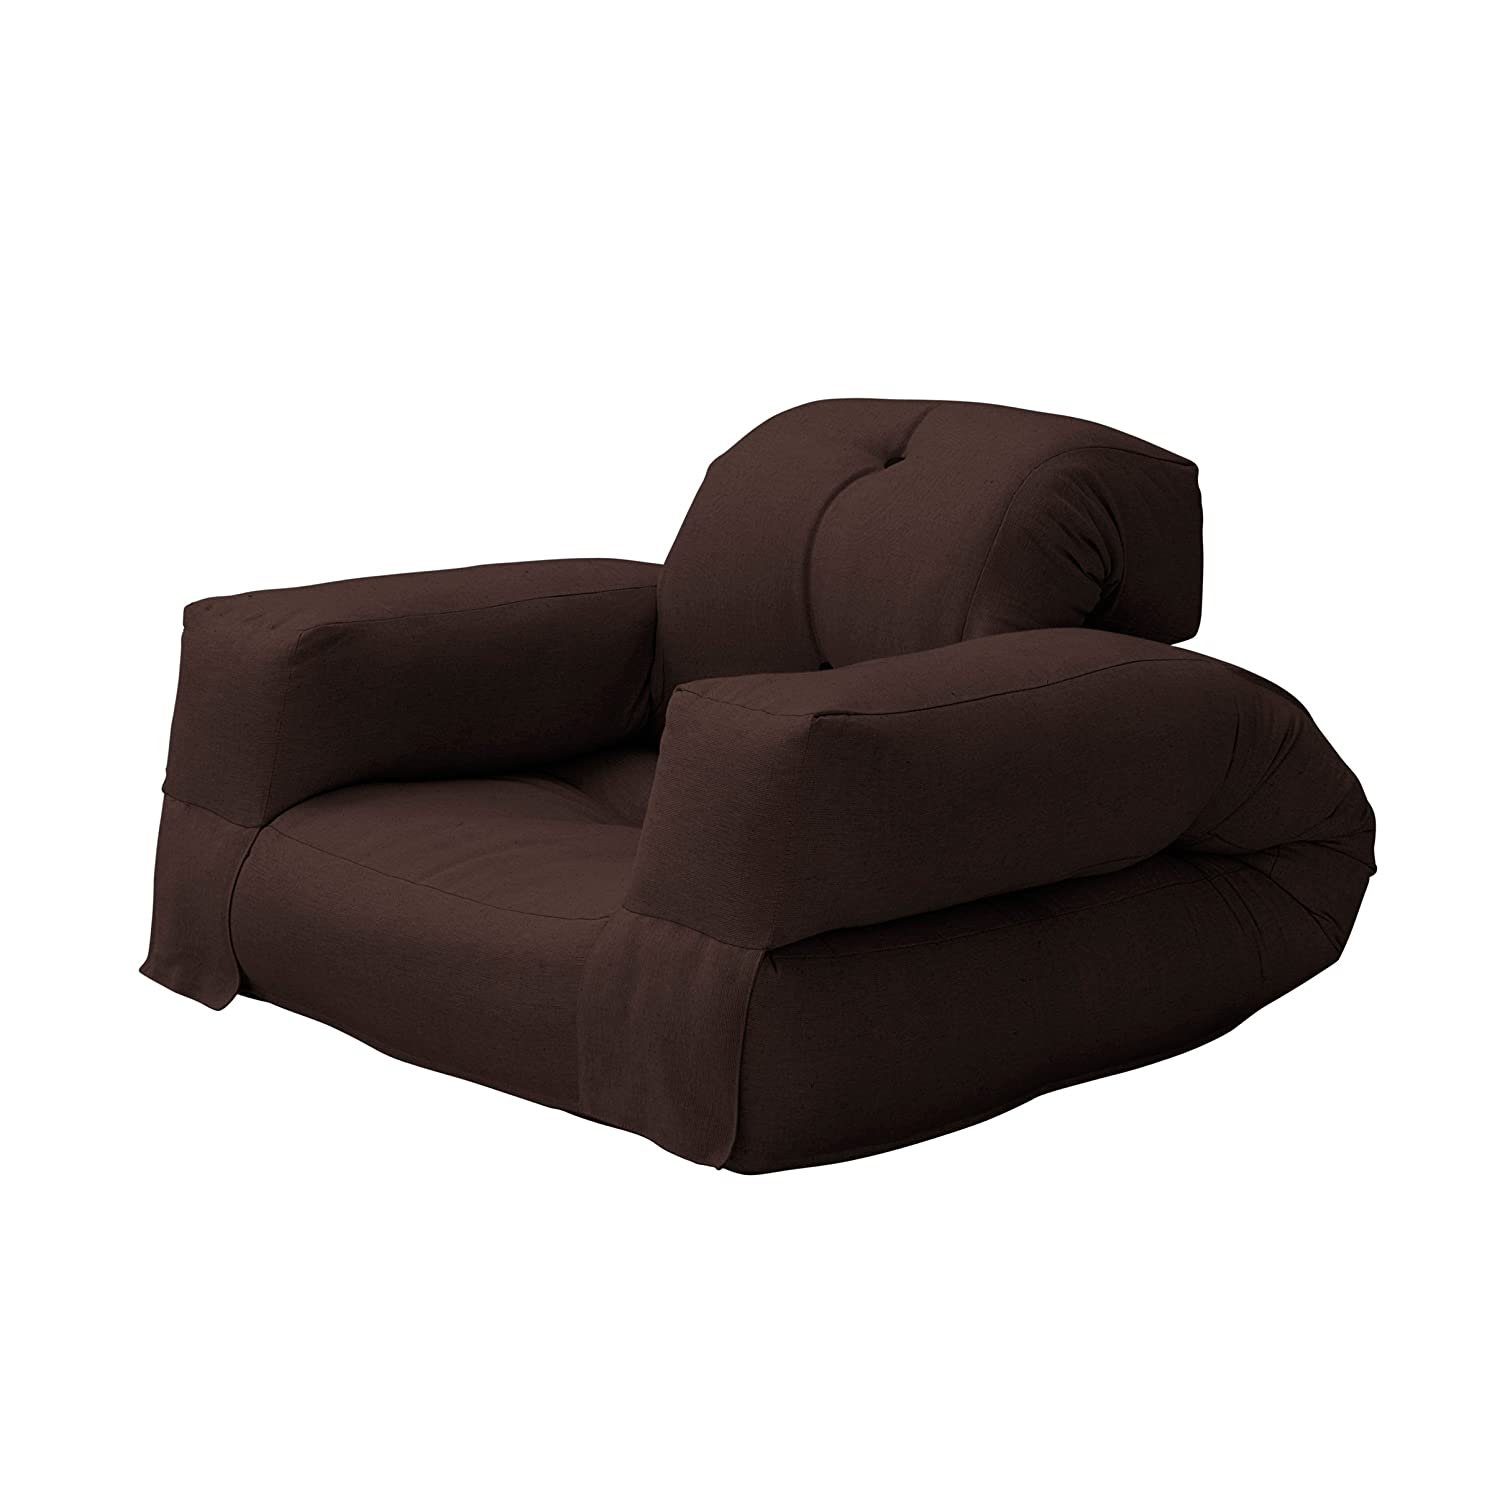 the sofa oak ikea fearsome chair chenille full futon freya mahogany setsofa bed fabulous sleeper awesome design size best pictures mattress of bedsofa twin brick